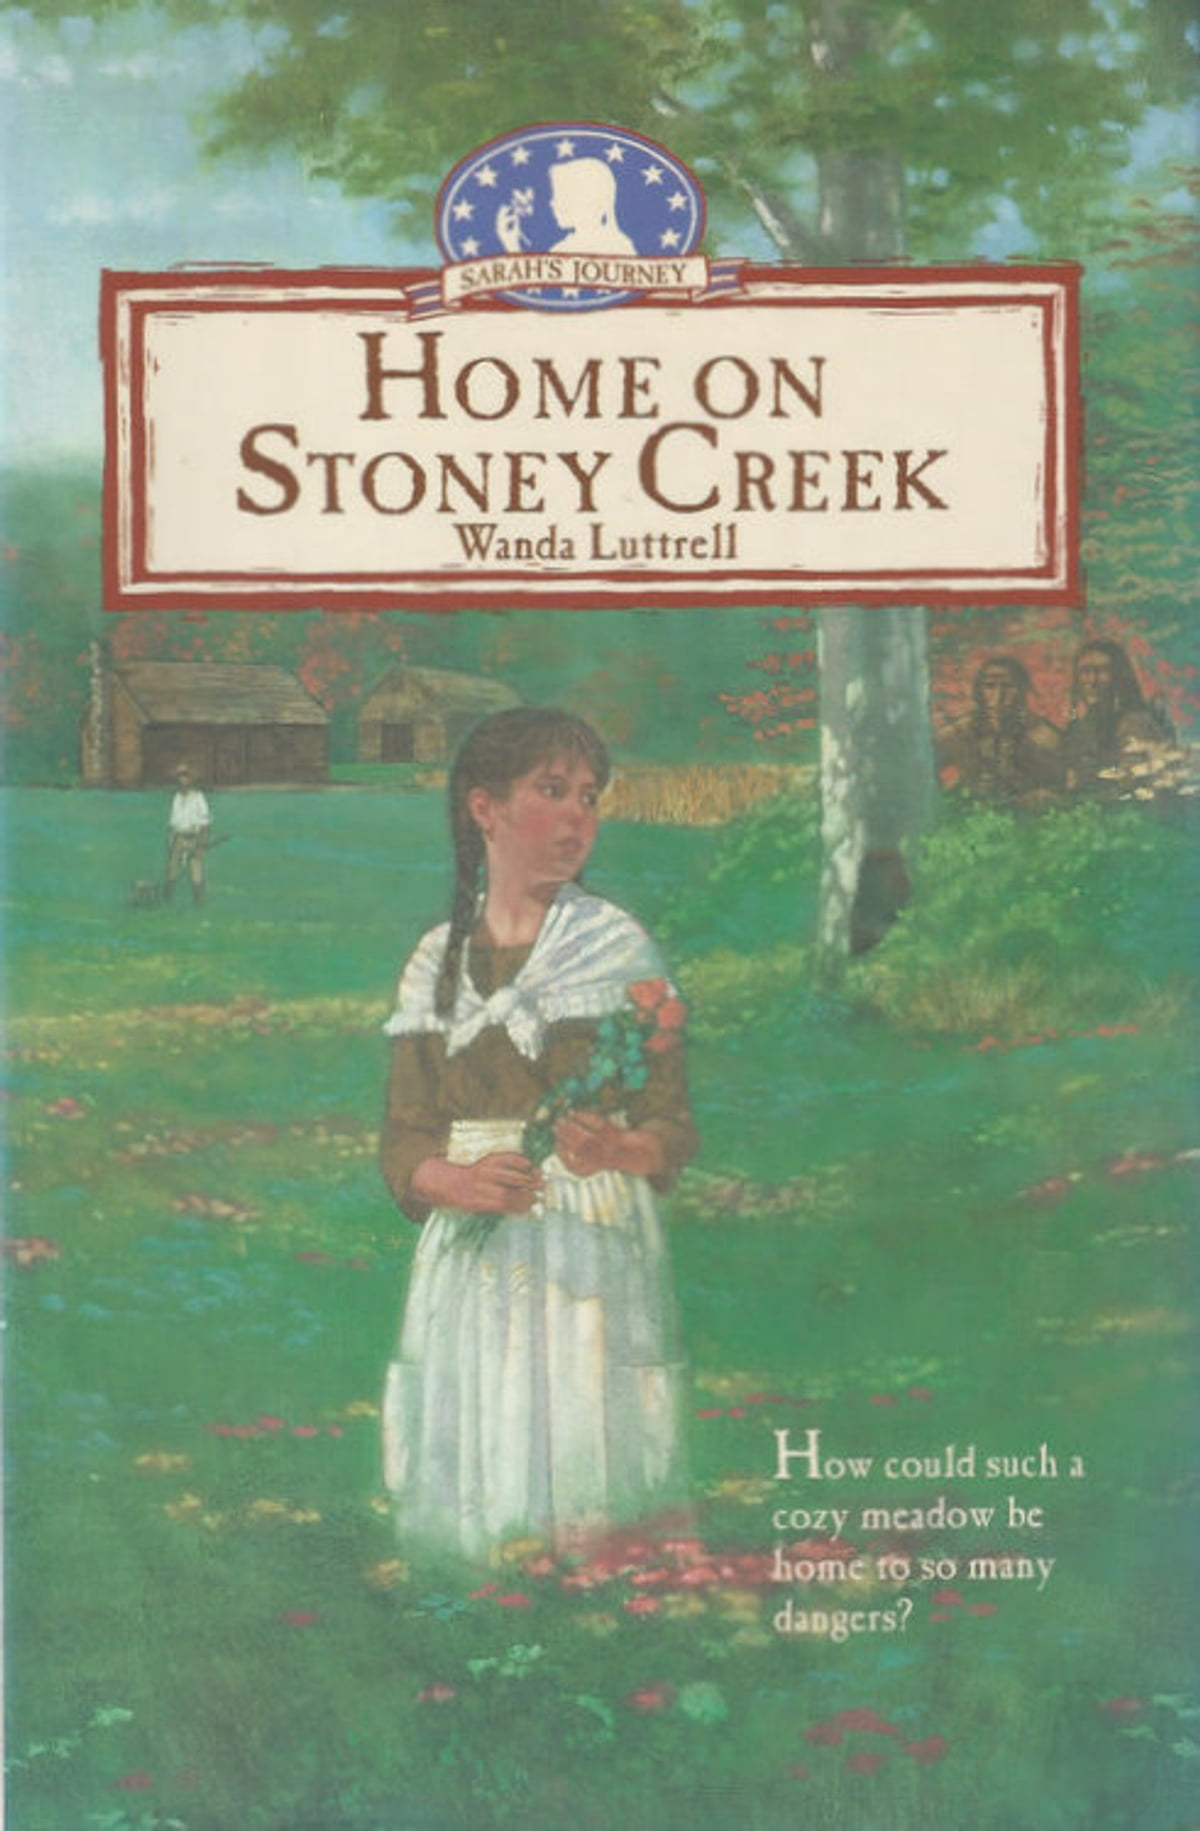 Home on Stoney Creek eBook by Wanda Luttrell - 9781476157528 | Rakuten Kobo